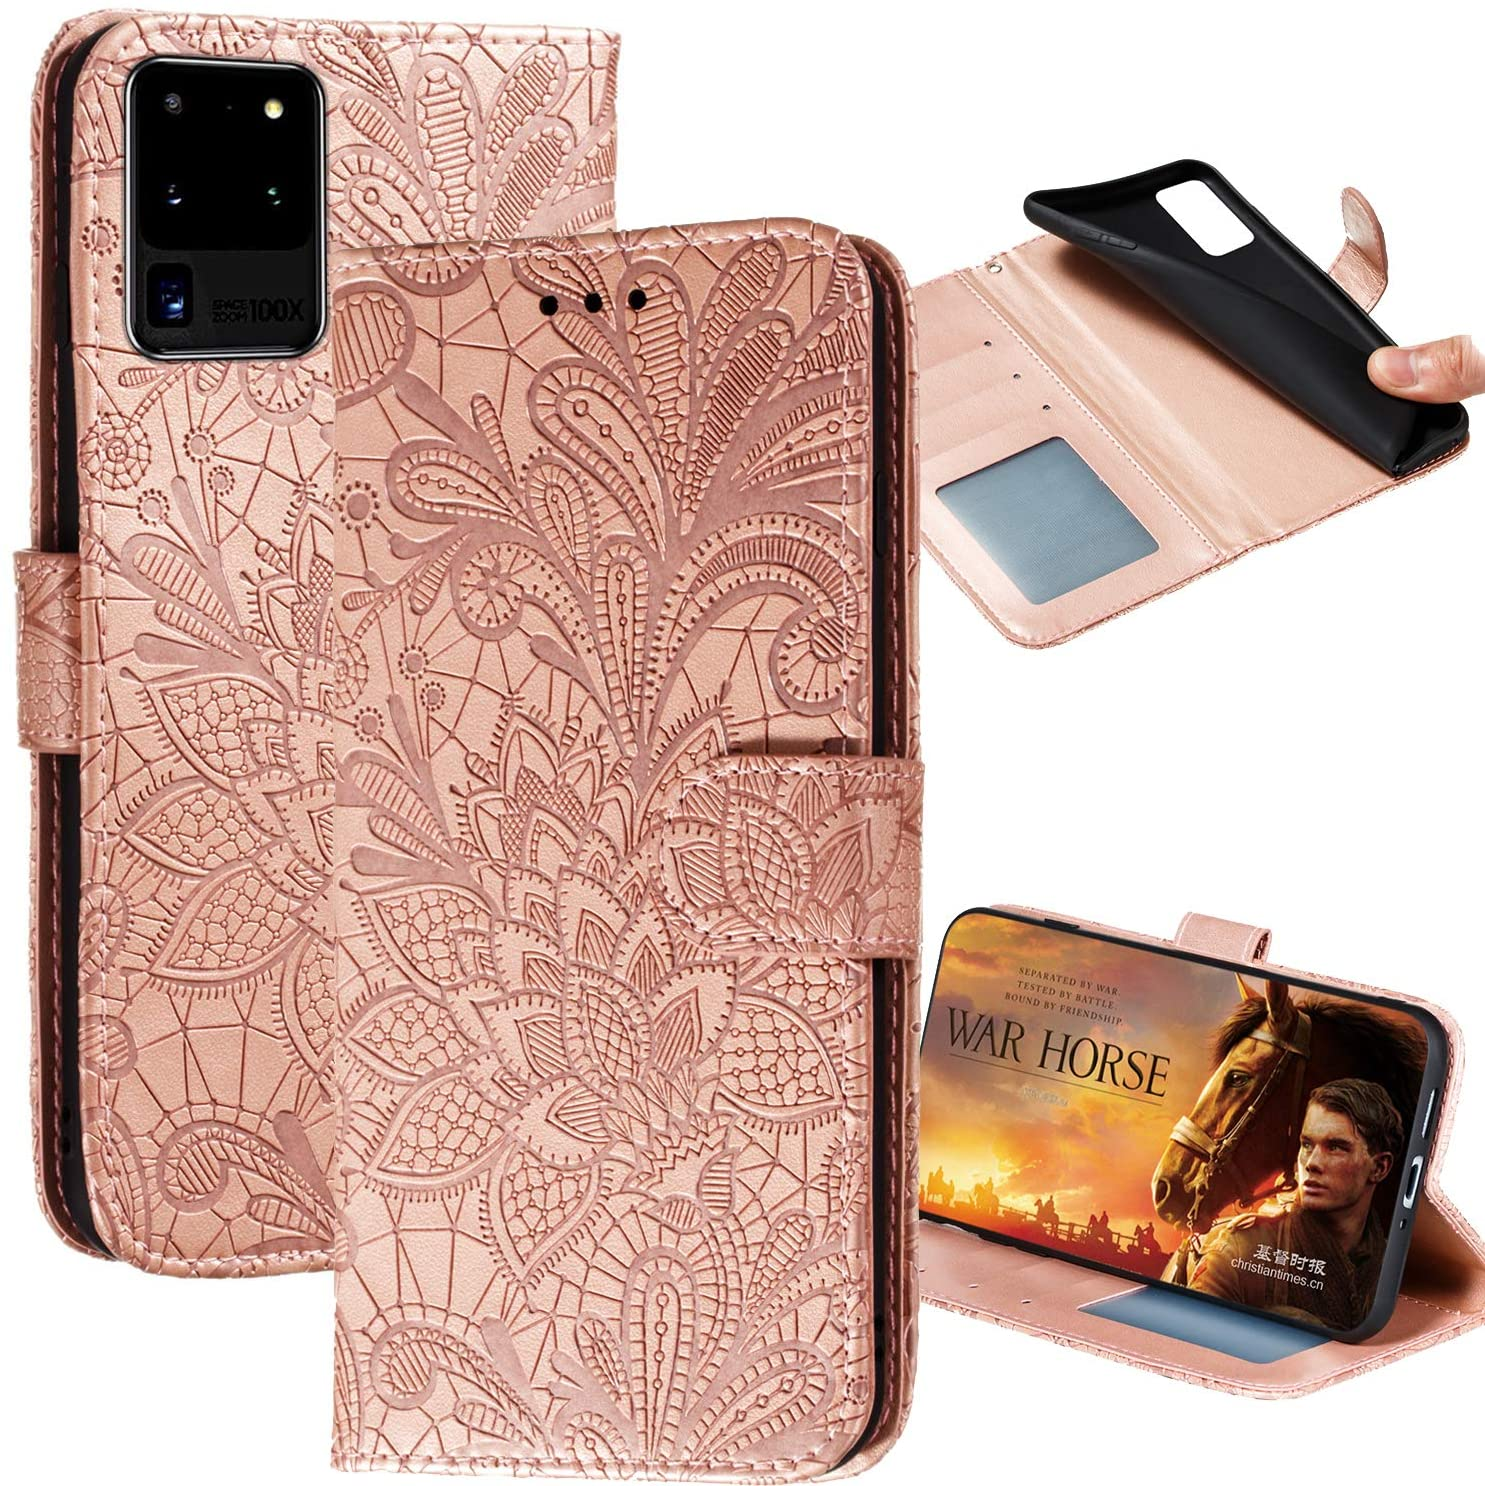 Samsung Galaxy S20 Ultra Wallet Case,Lace Embossed Flowers PU Leather Magnetic Flip Cover Stand Card Holders & Hand Strap Purse Phone Case for Samsung Galaxy S20 Ultra 5g(Rose Gold) LS